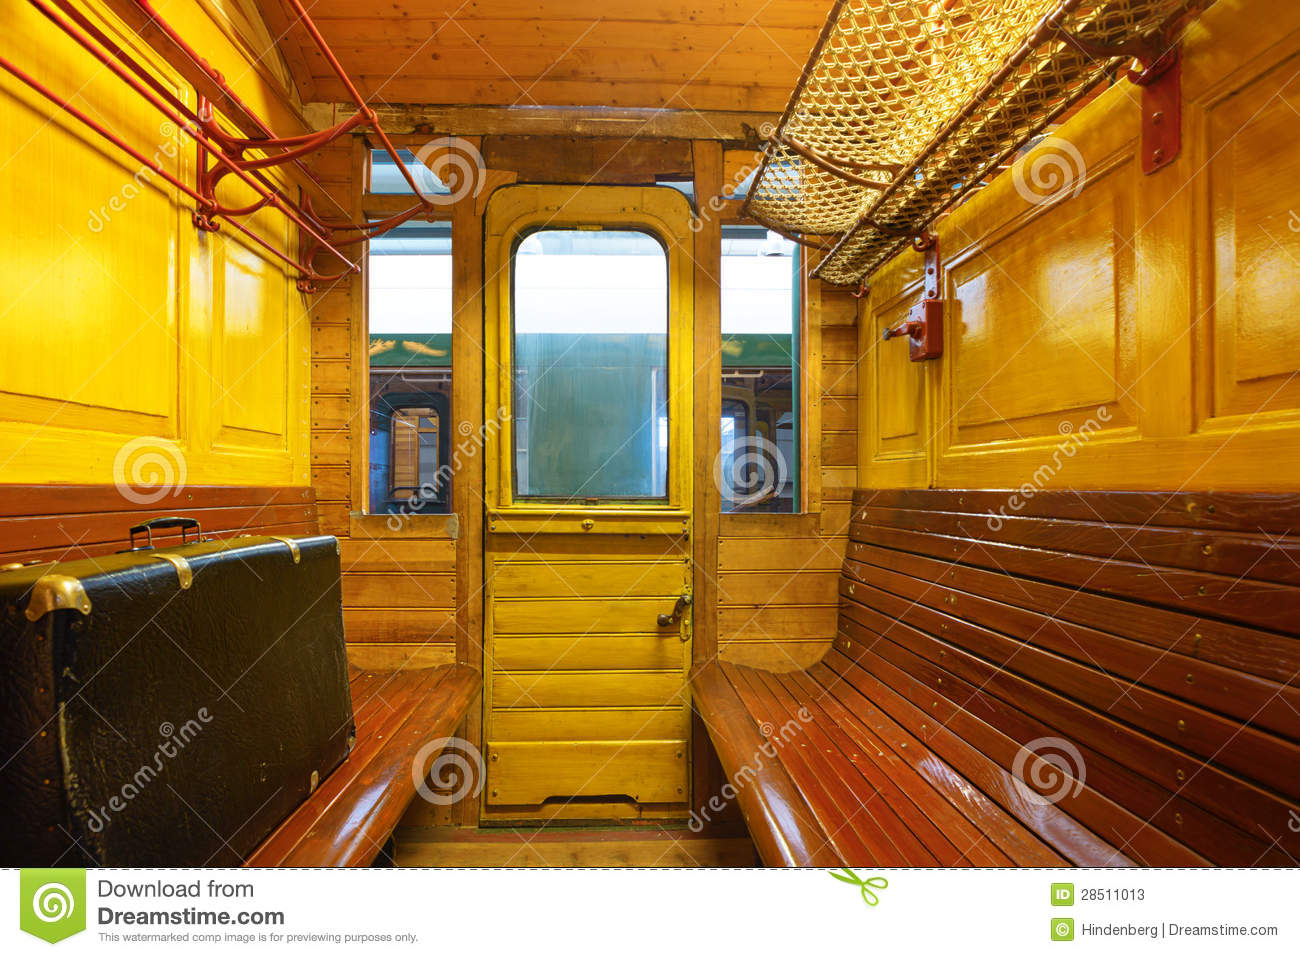 Berlin Interior Design Train Compartment Stock Image. Image Of Train, Compartment